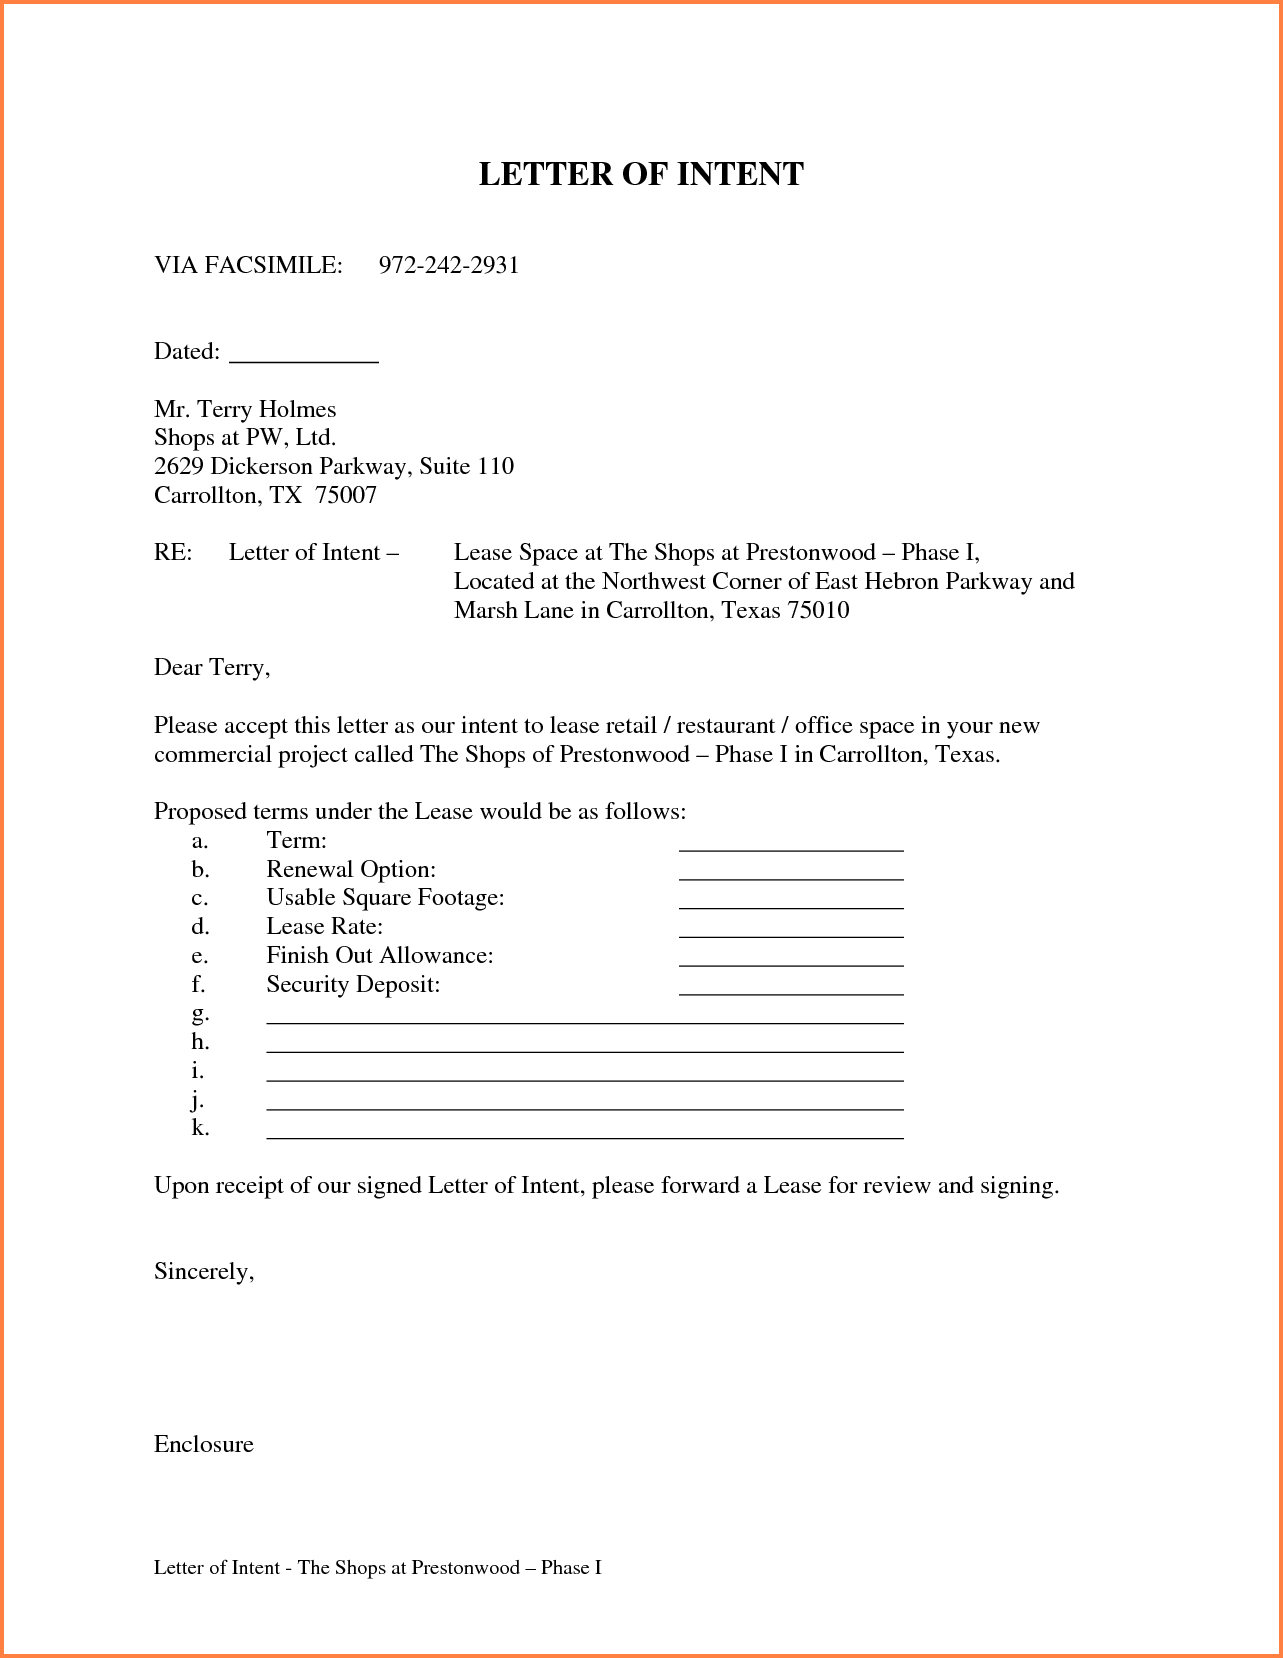 Letter Of Intent to Lease Template Free - Letter Intent for Lease Template Awesome Letter Intent for